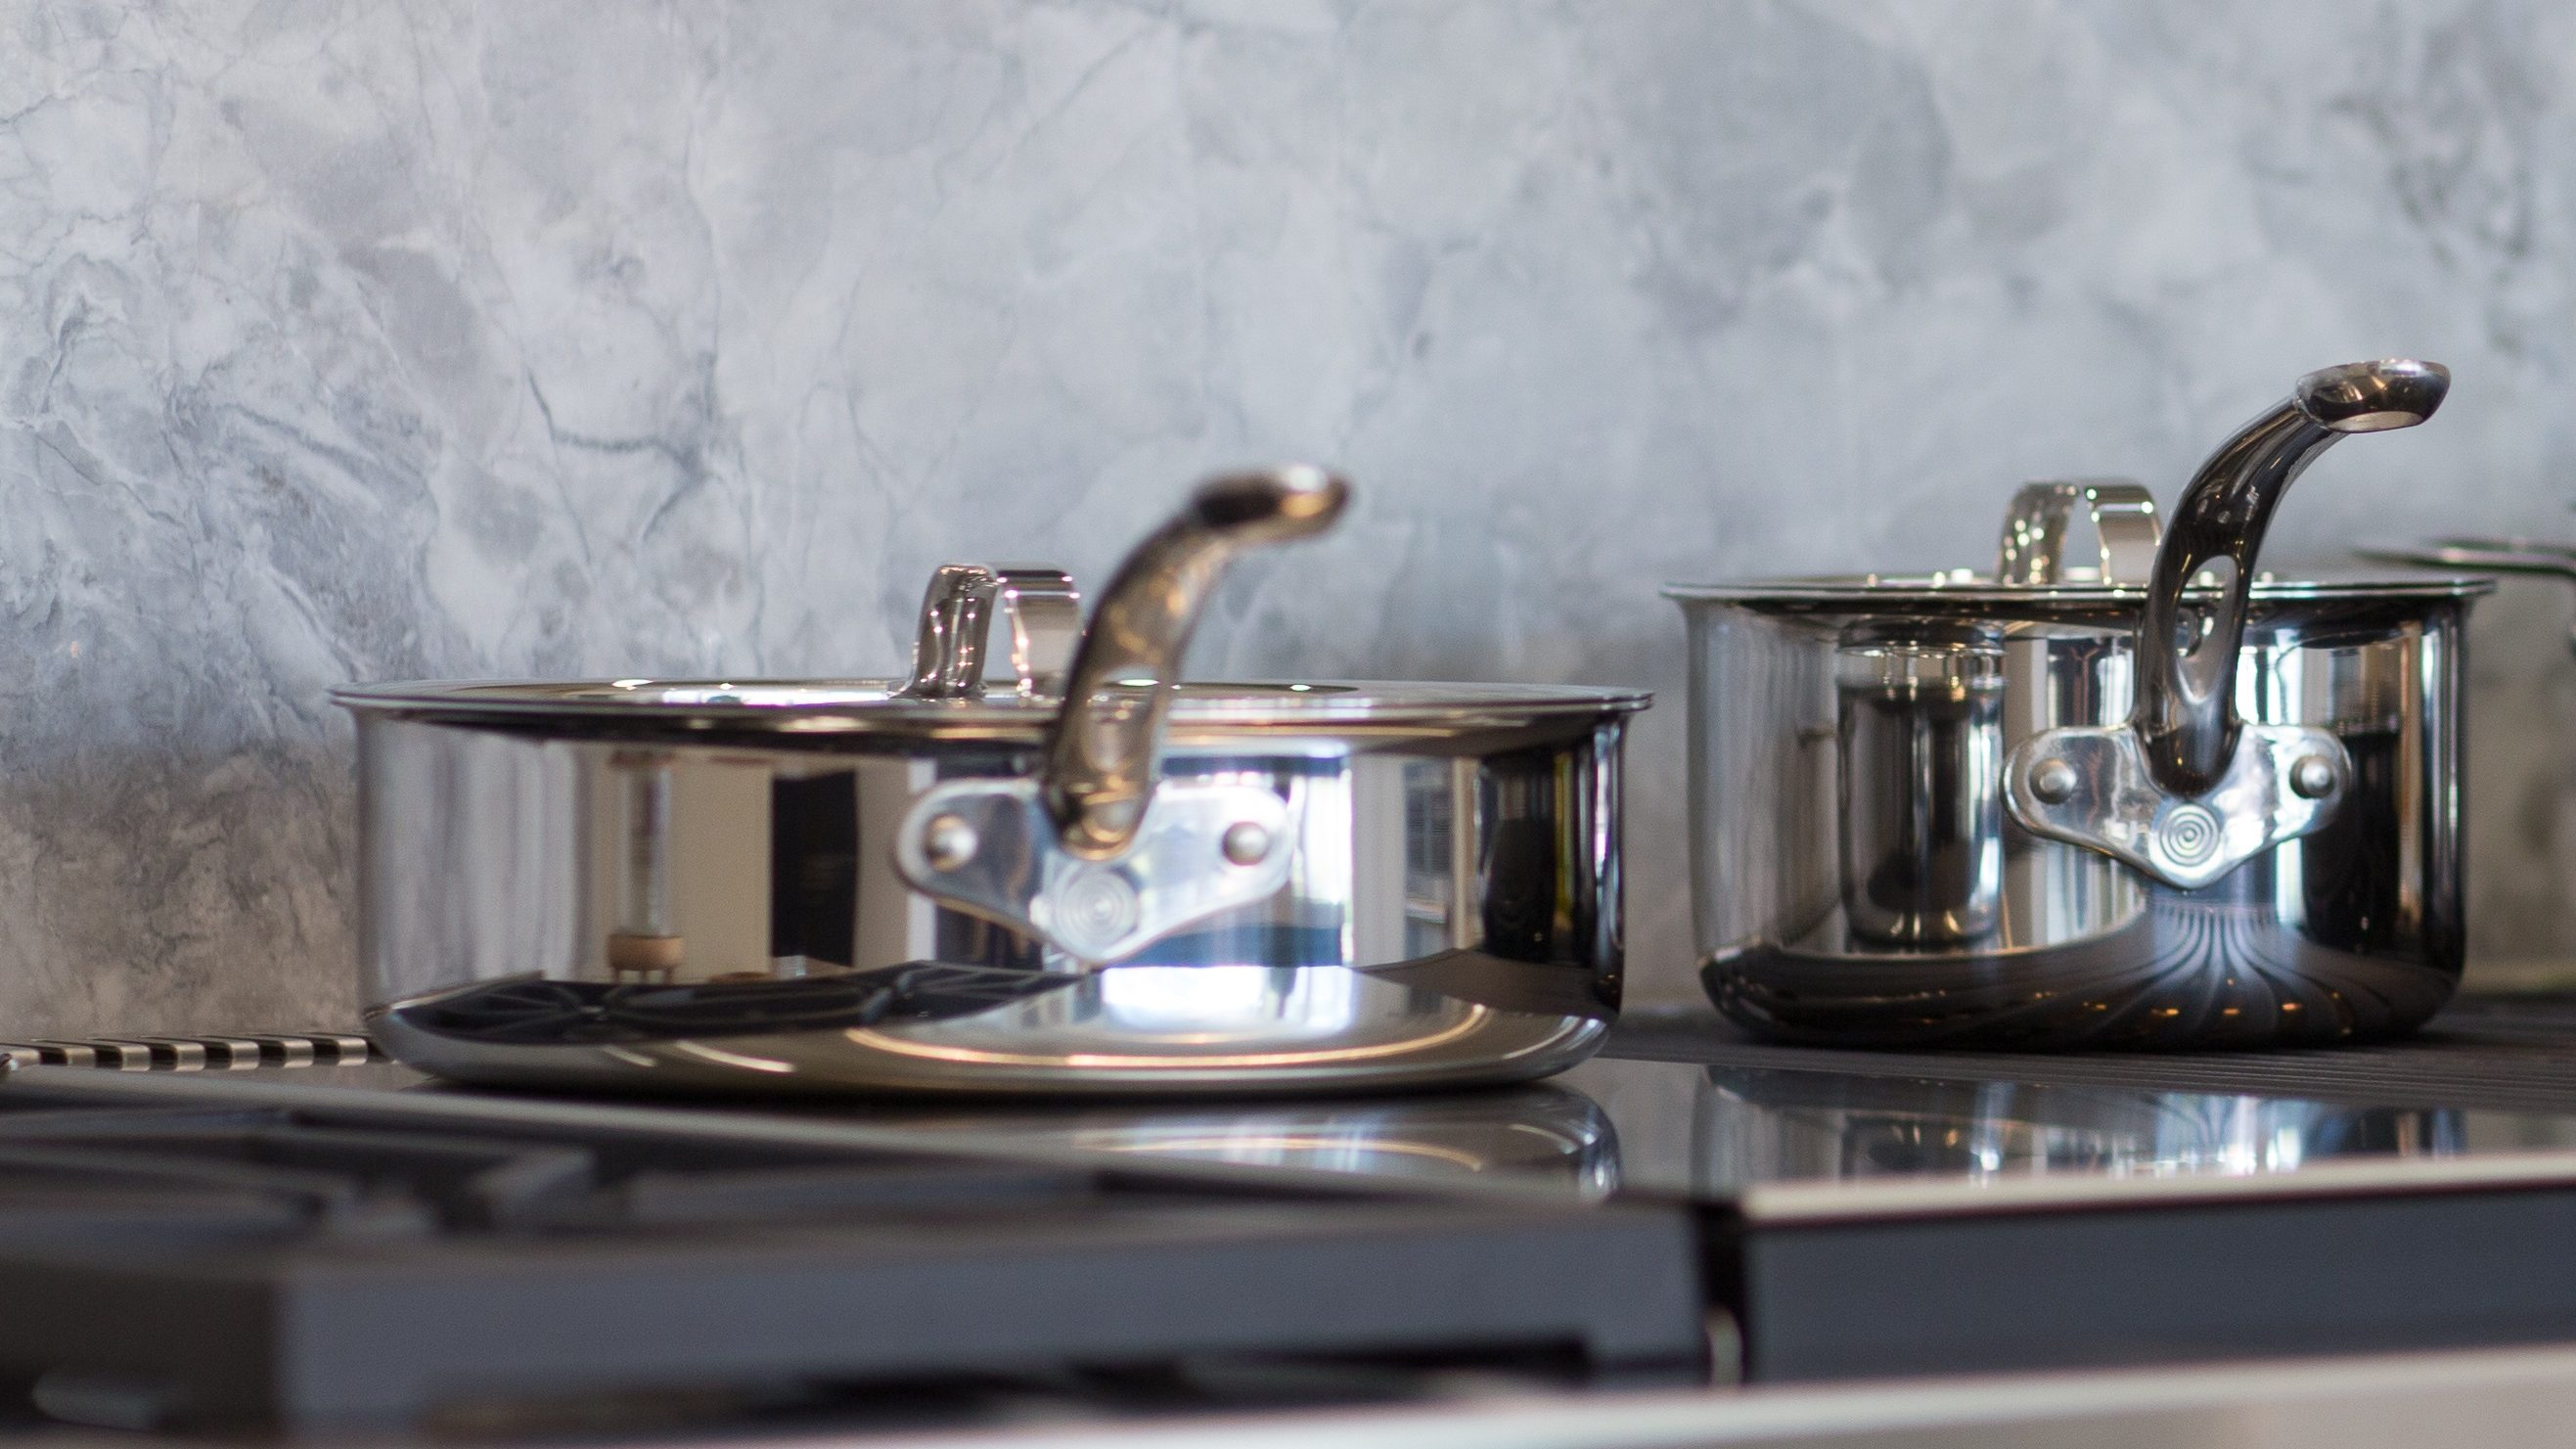 ProWare Stainless Steel Tri-Ply Hob